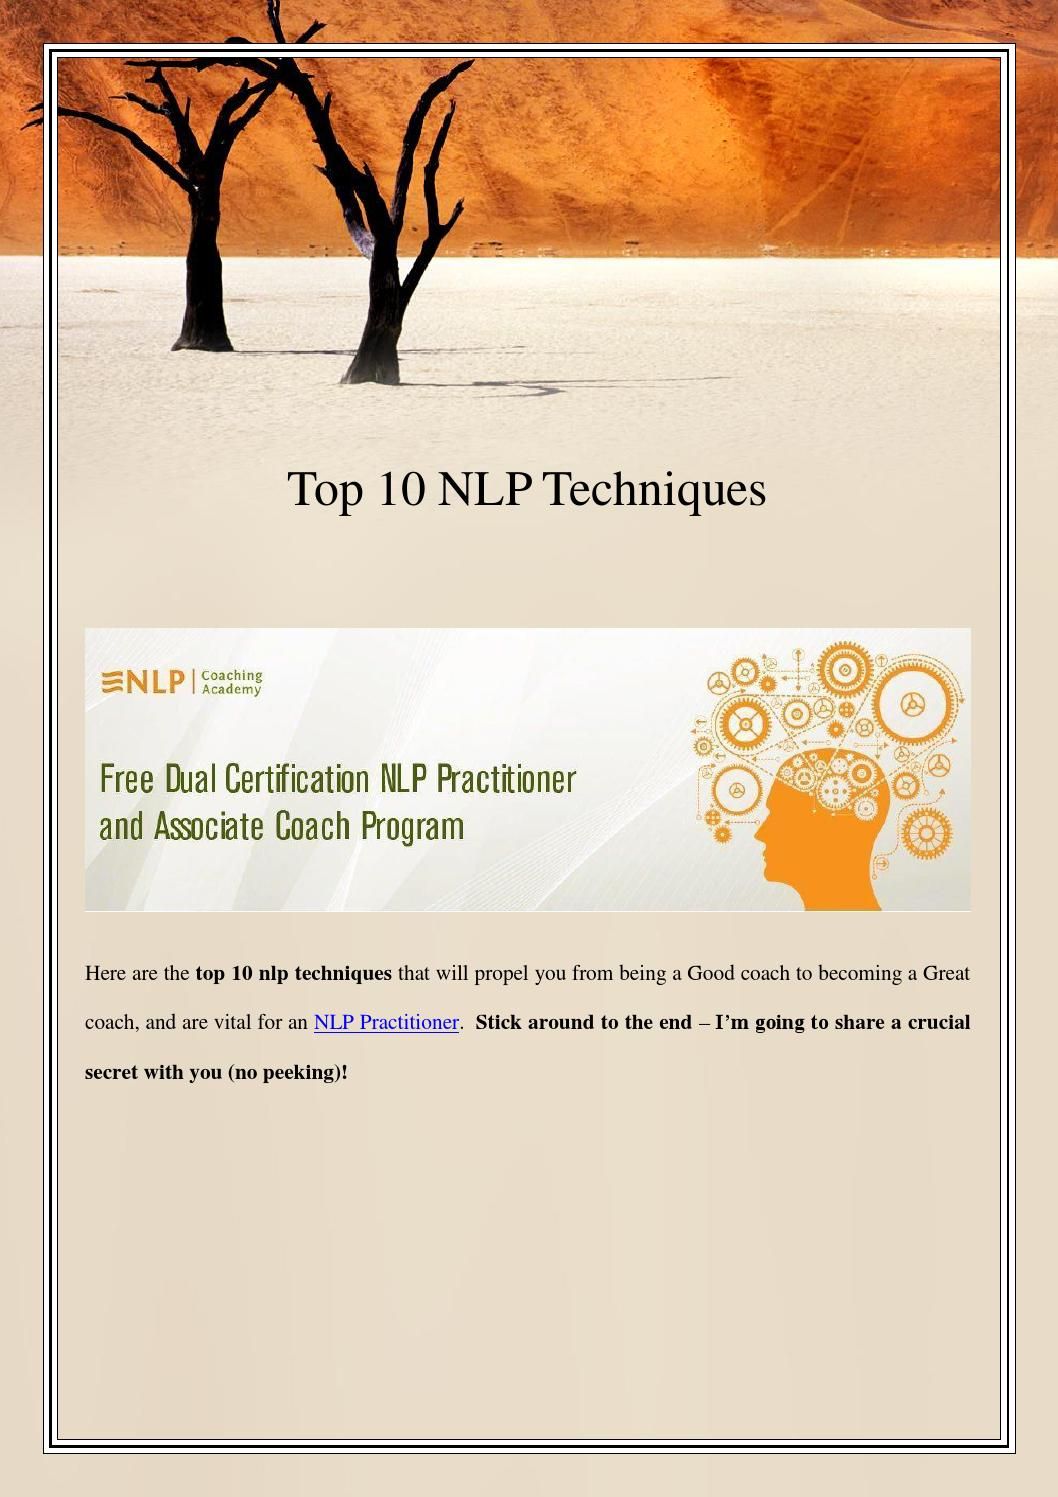 Top 10 nlp techniques by JD Liners - Issuu